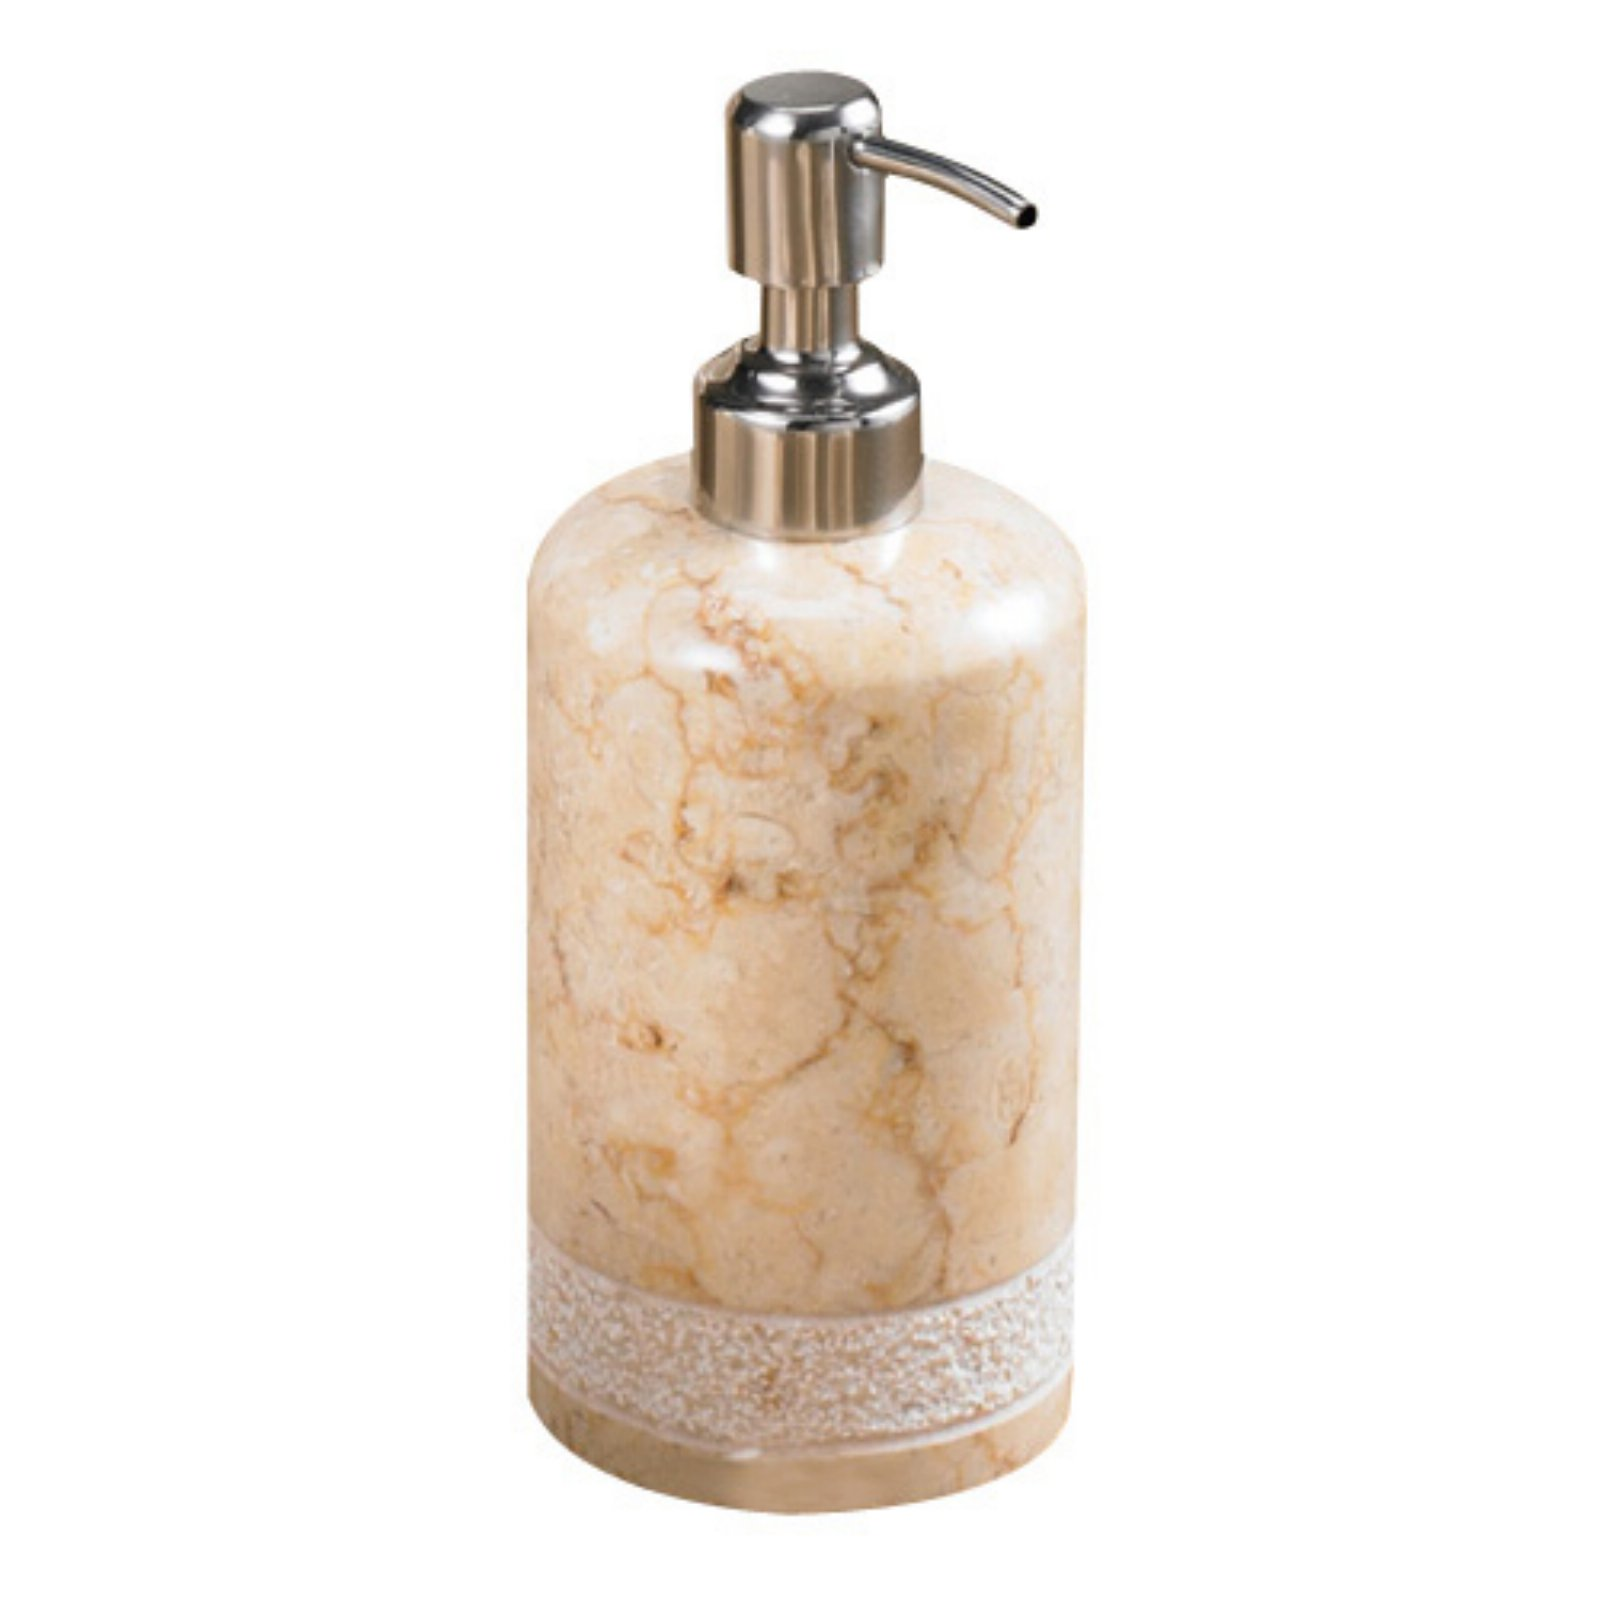 Shop for marble soap dispenser online at Target. Free shipping on purchases over $35 and save 5% every day with your Target REDcard.